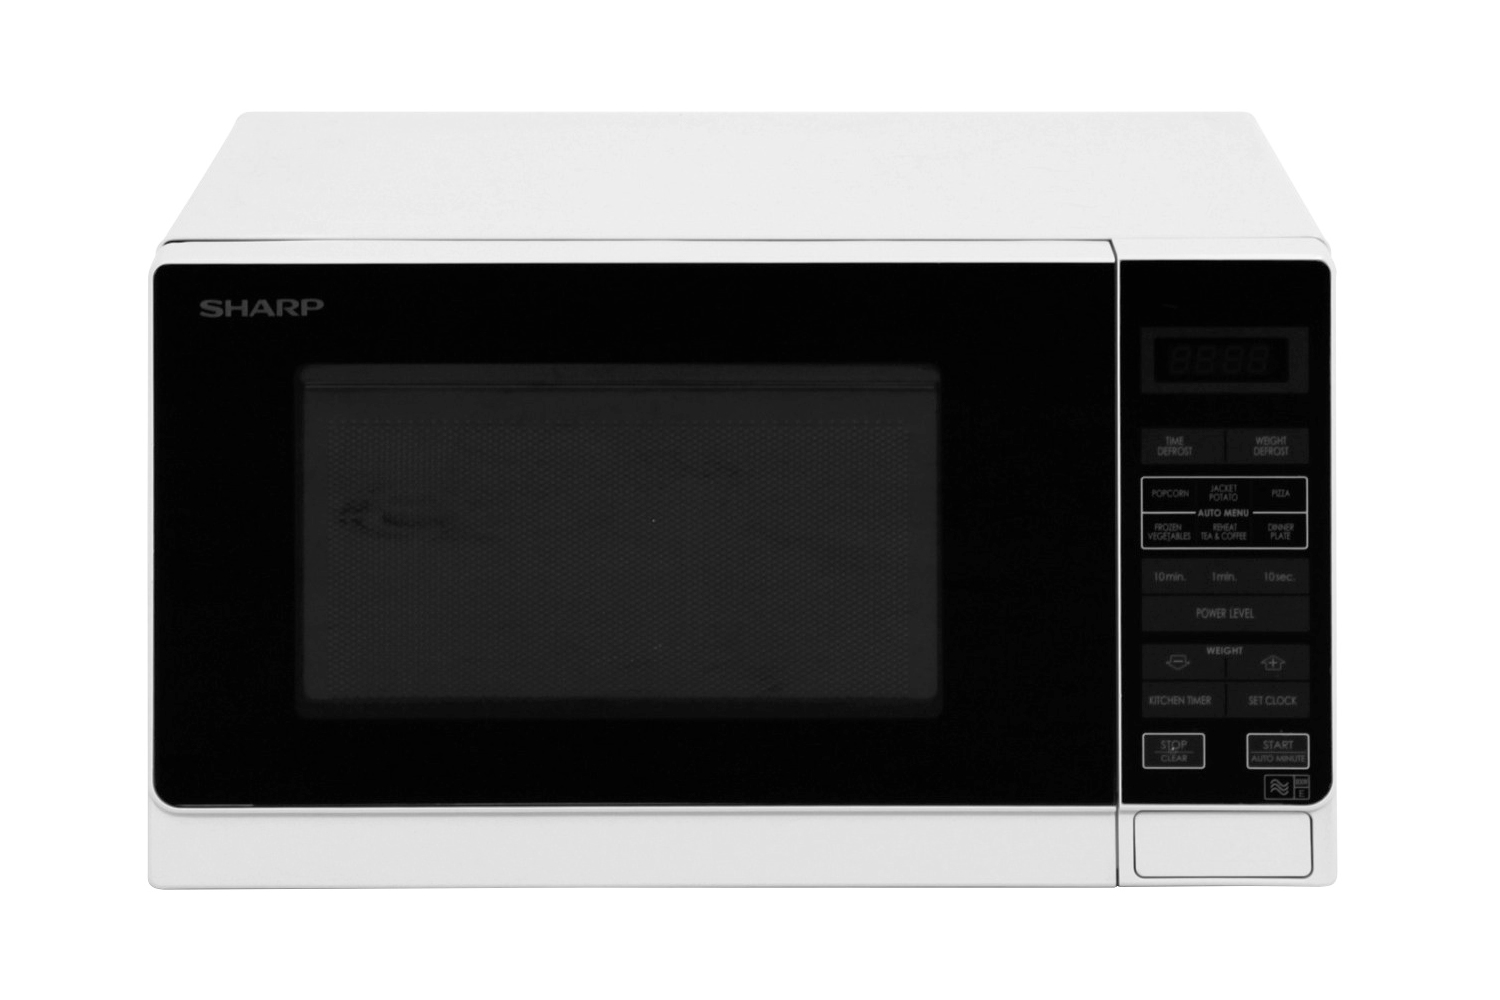 Sharp Compact Size Microwave Oven | Harvey Norman New Zealand